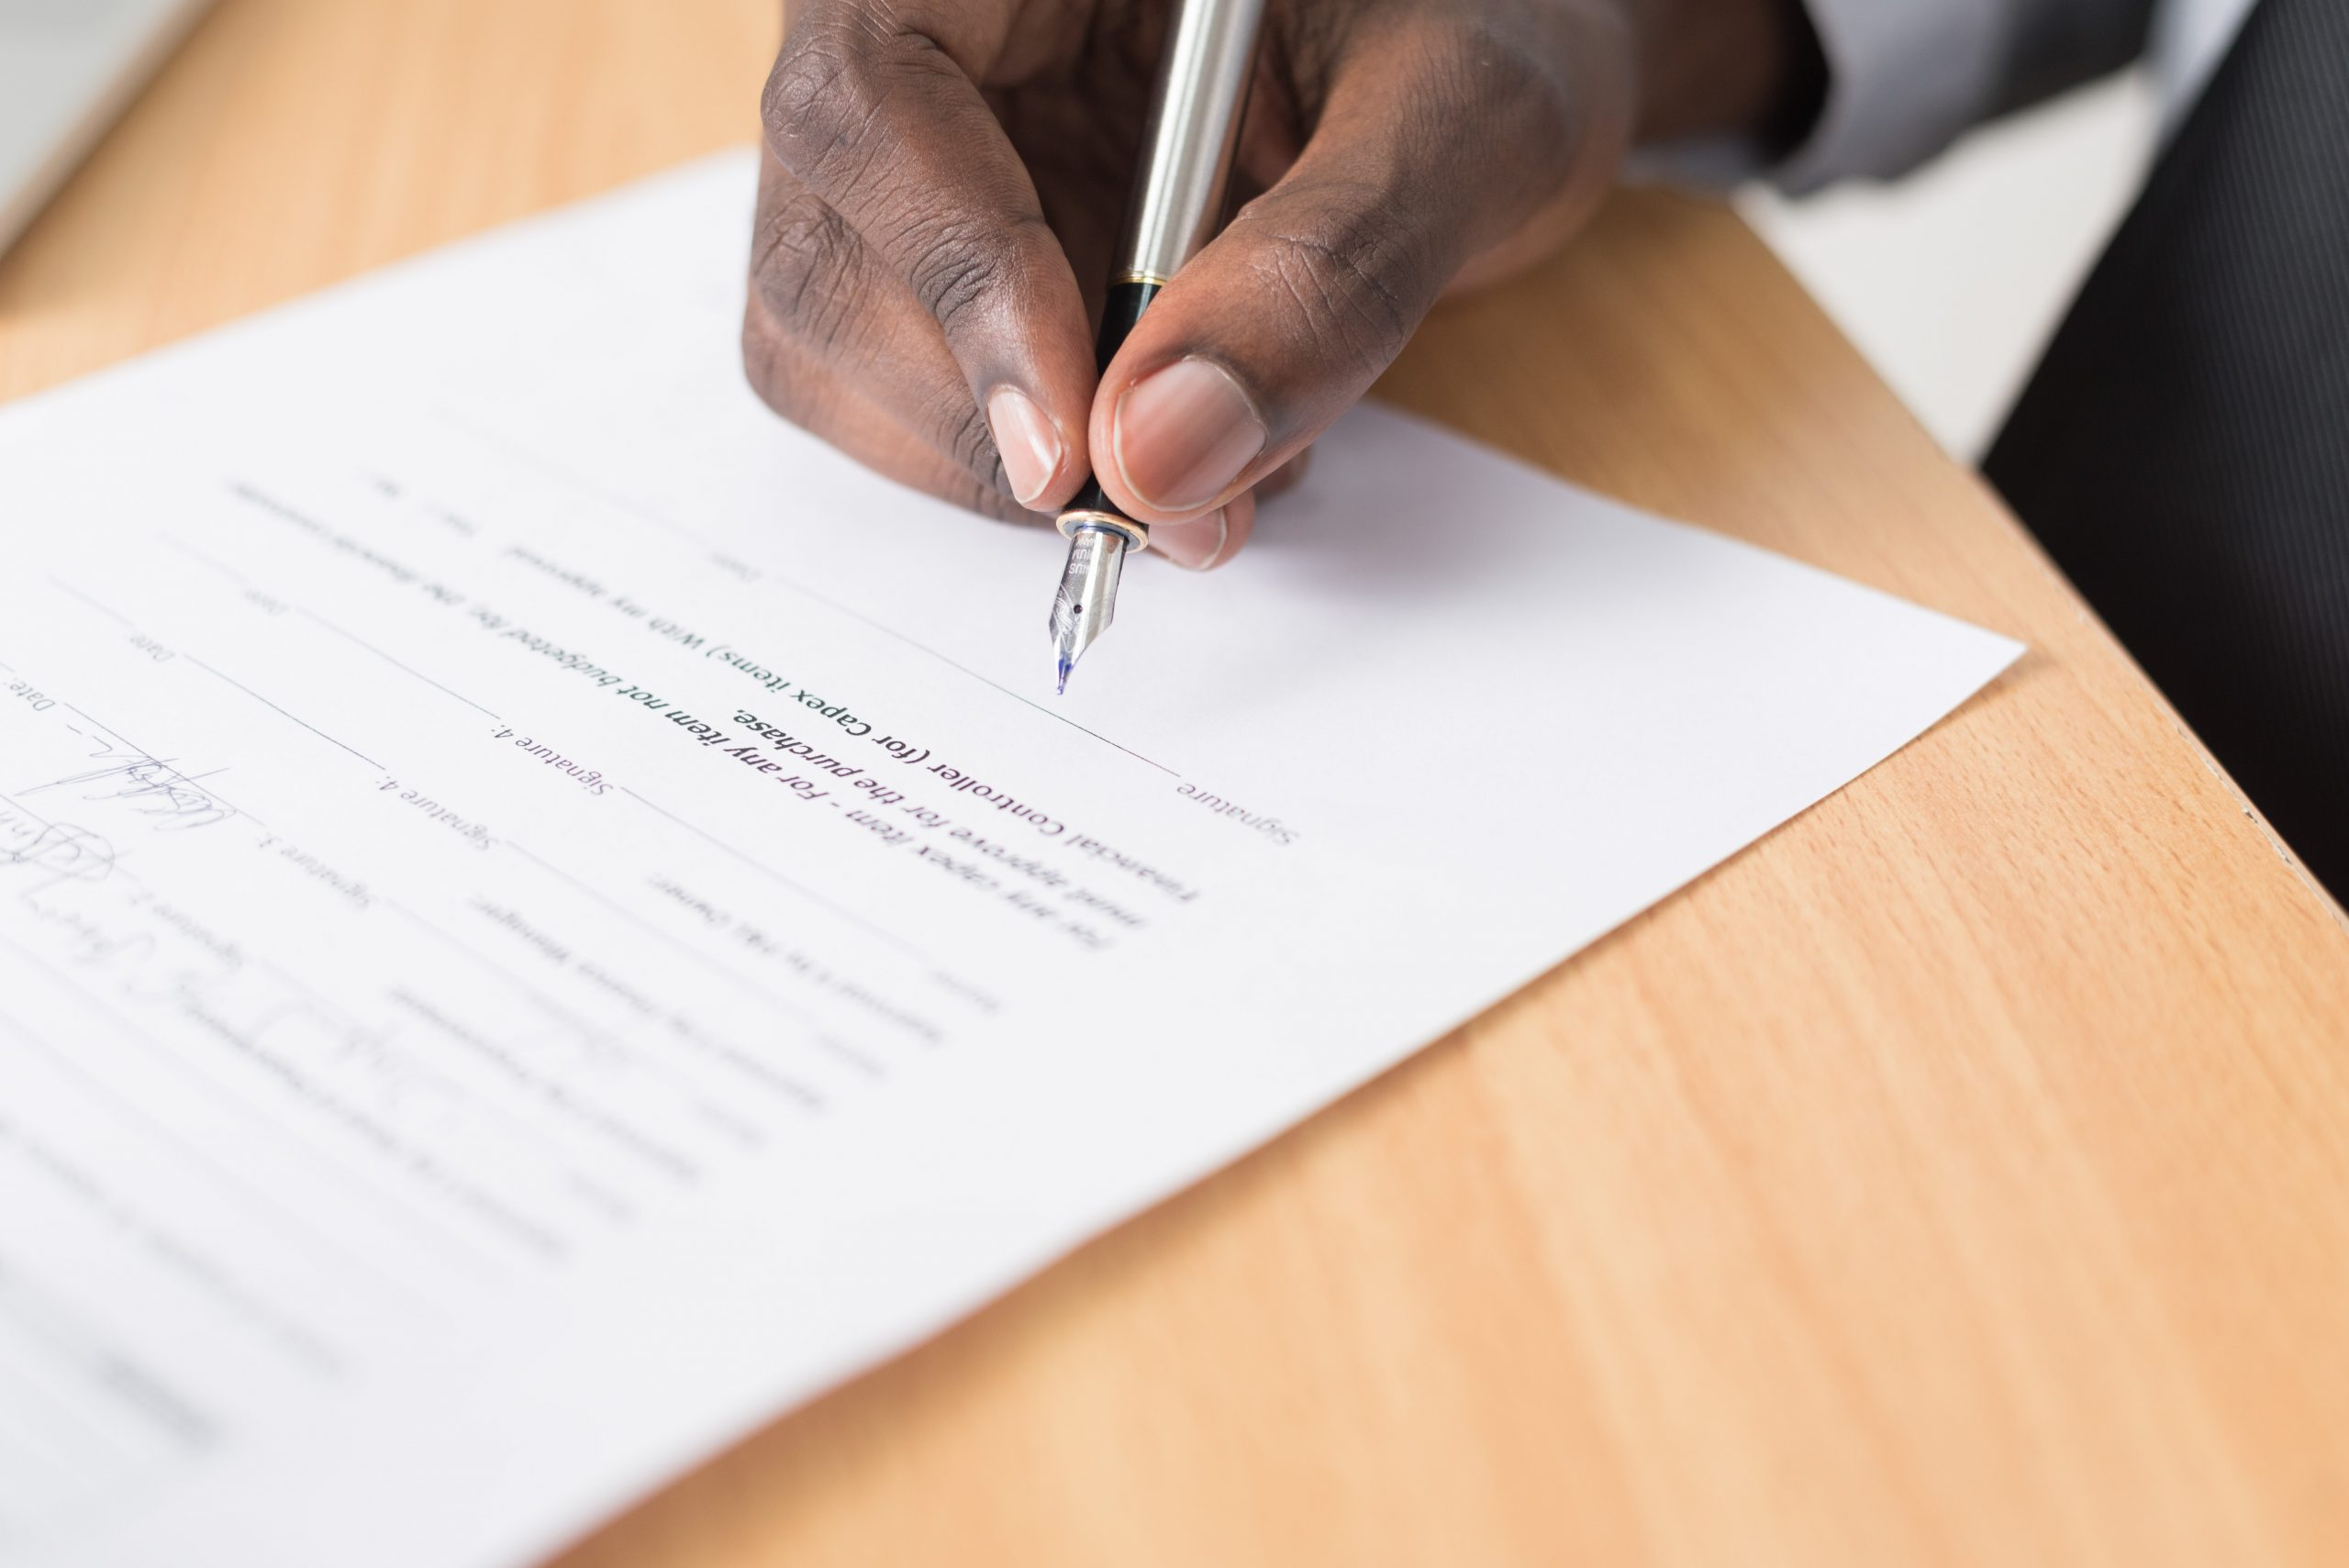 What Every Professional Should Know Who Deals with Documents